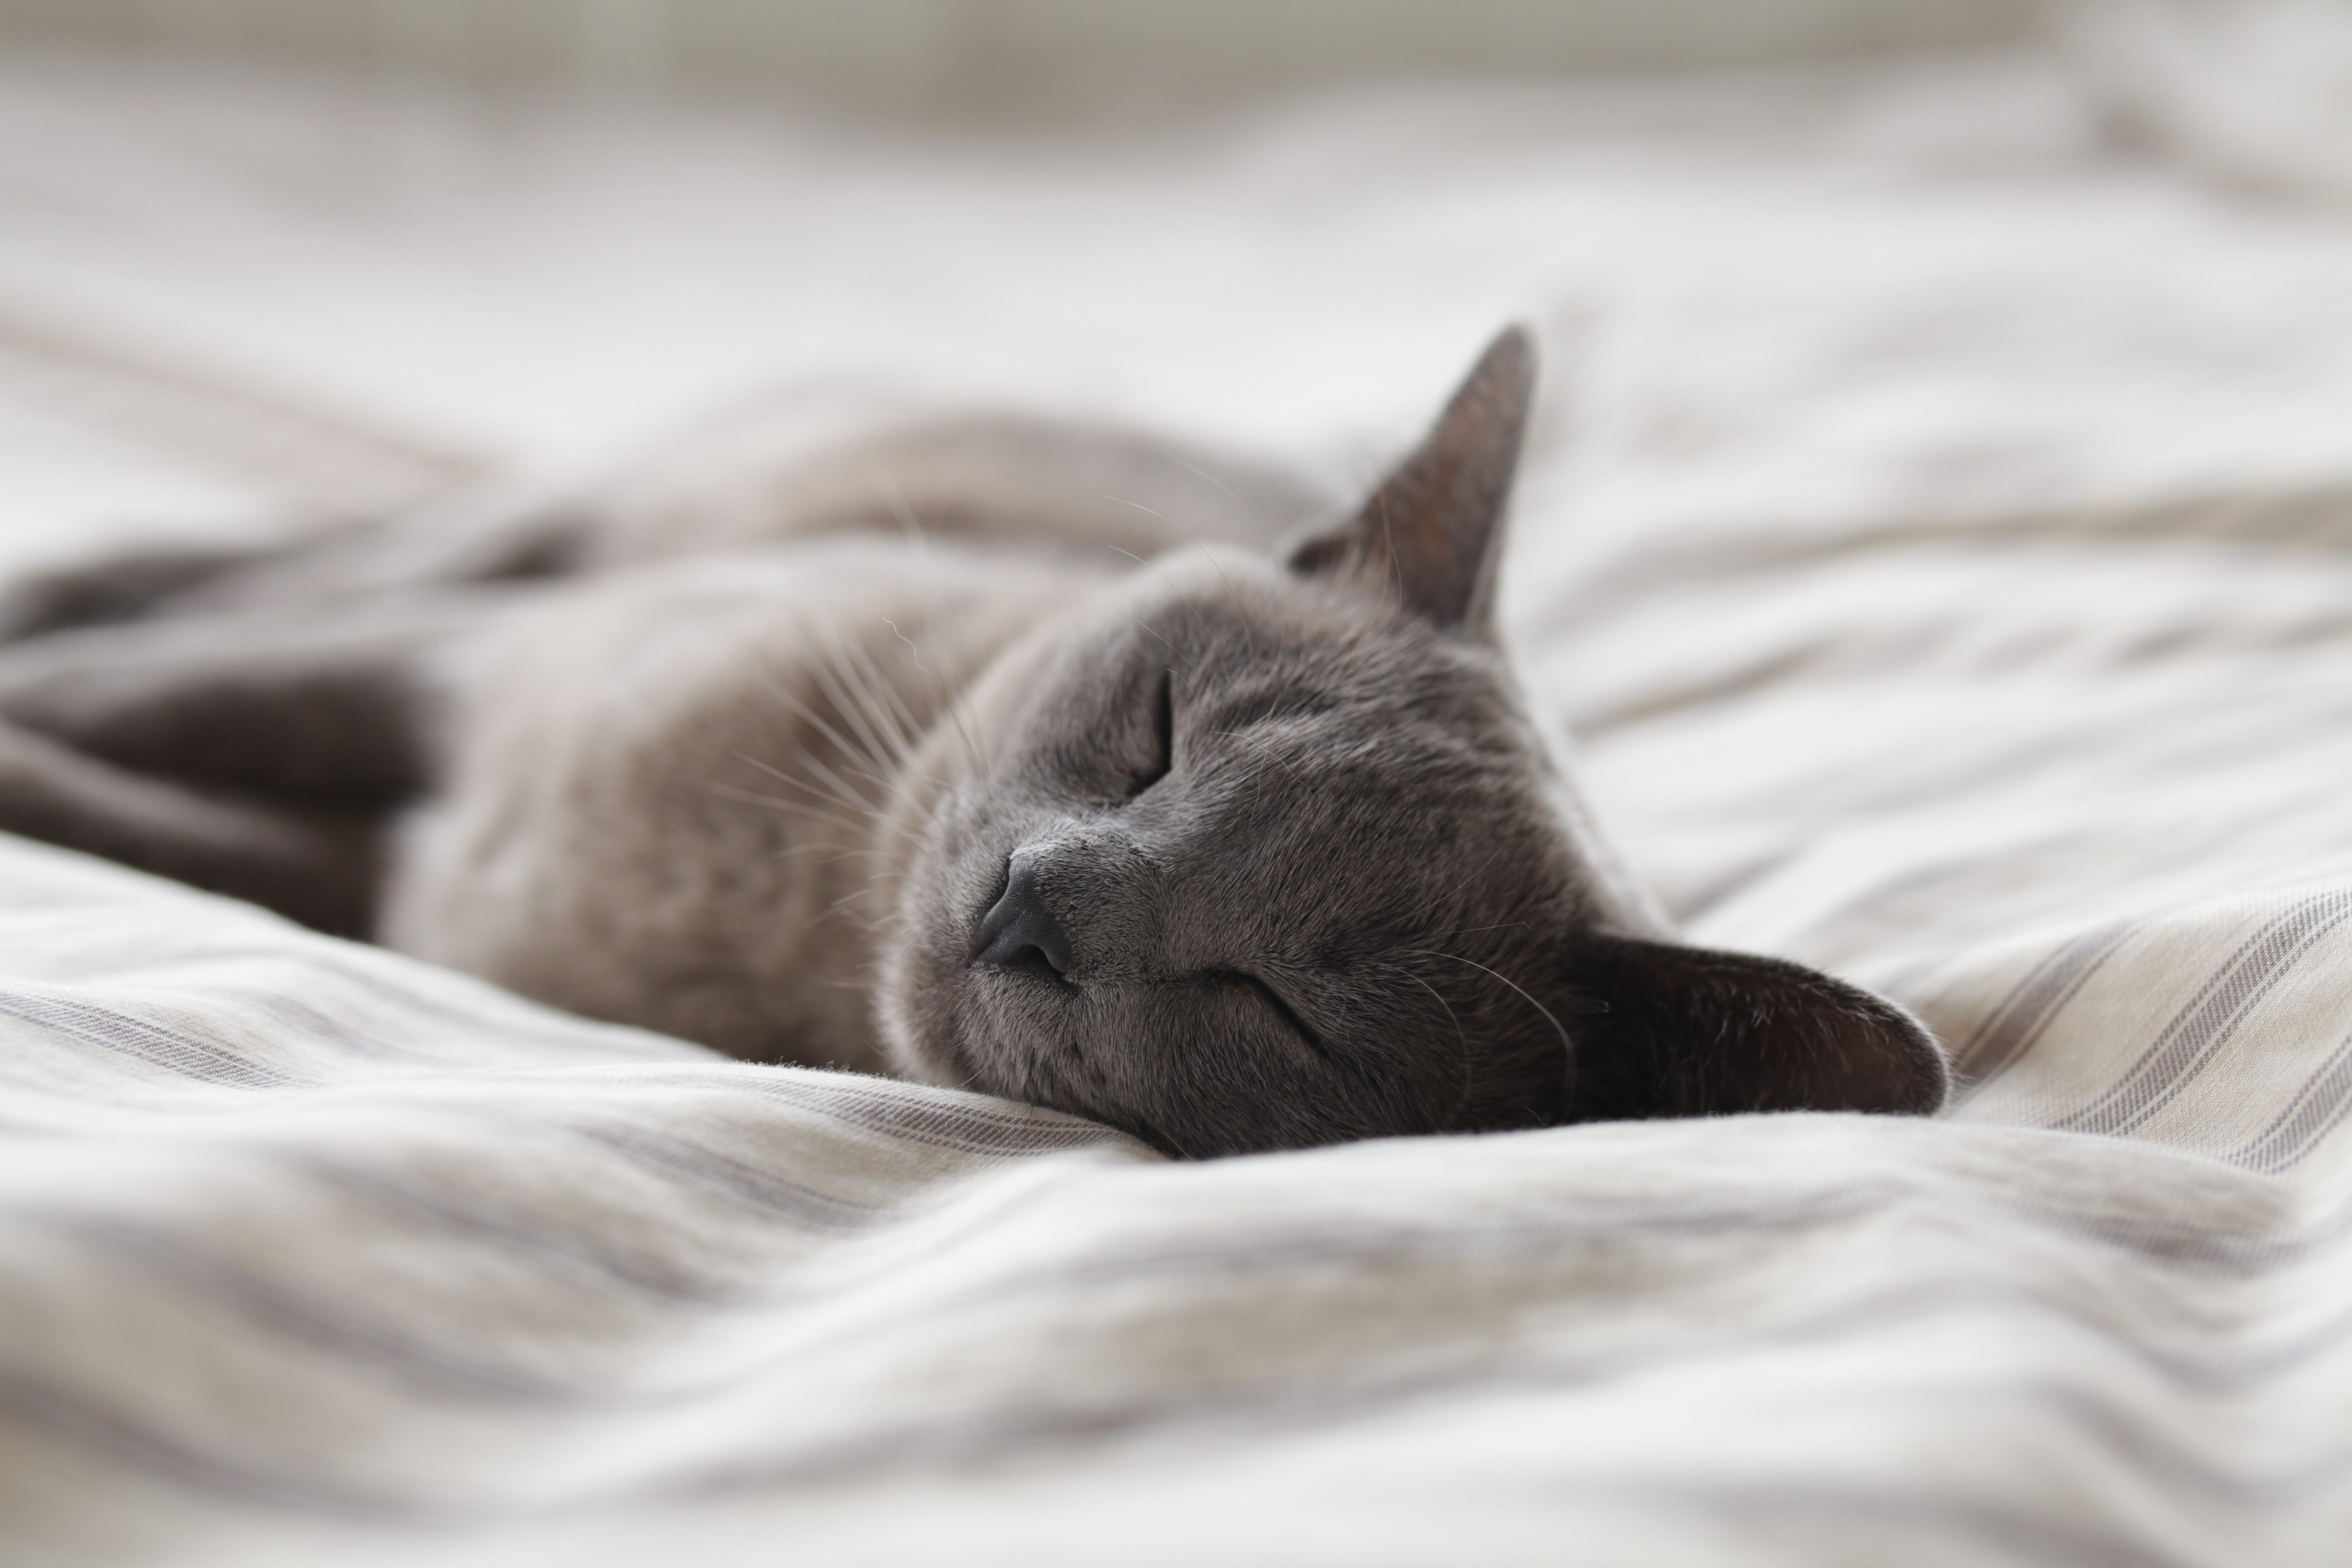 How To Get A Better Sleep Naturally - Improve Your Sleep Quality